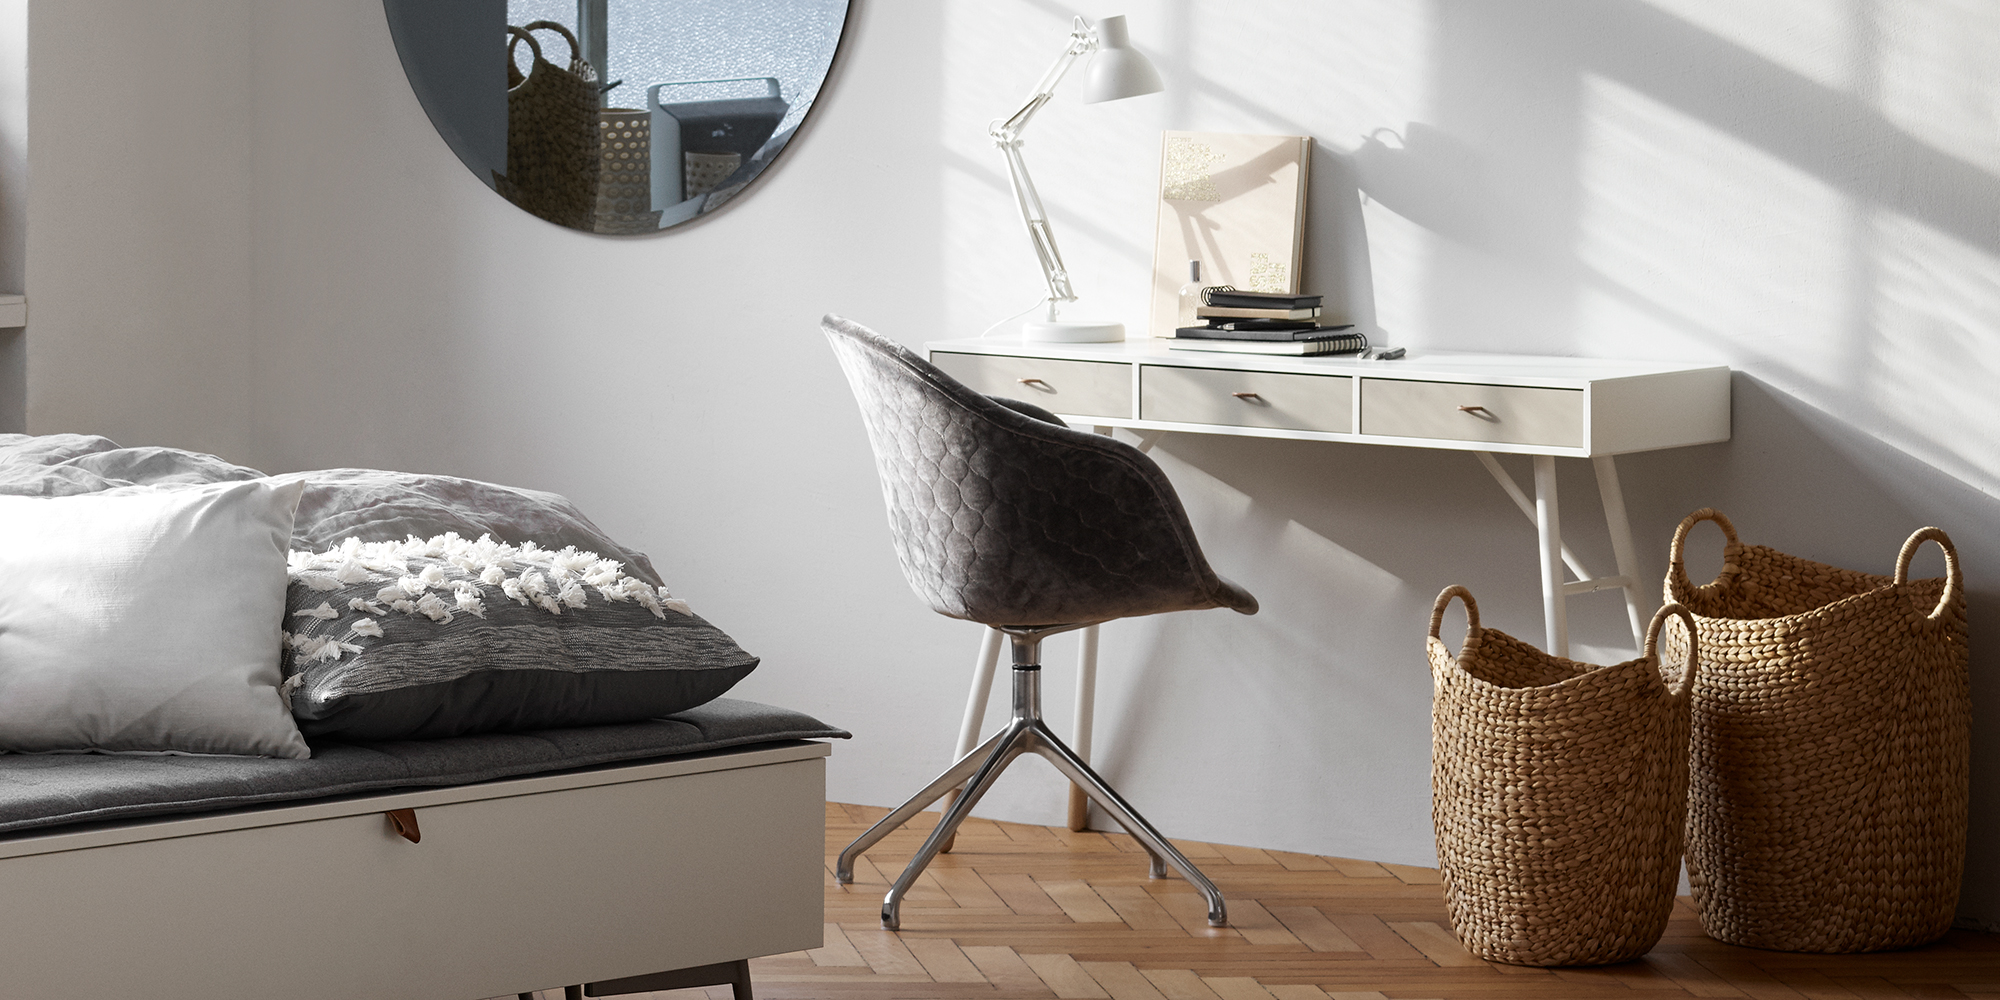 White Cupertino console table with 3 drawers and grey quilt velvet Adelaide chair